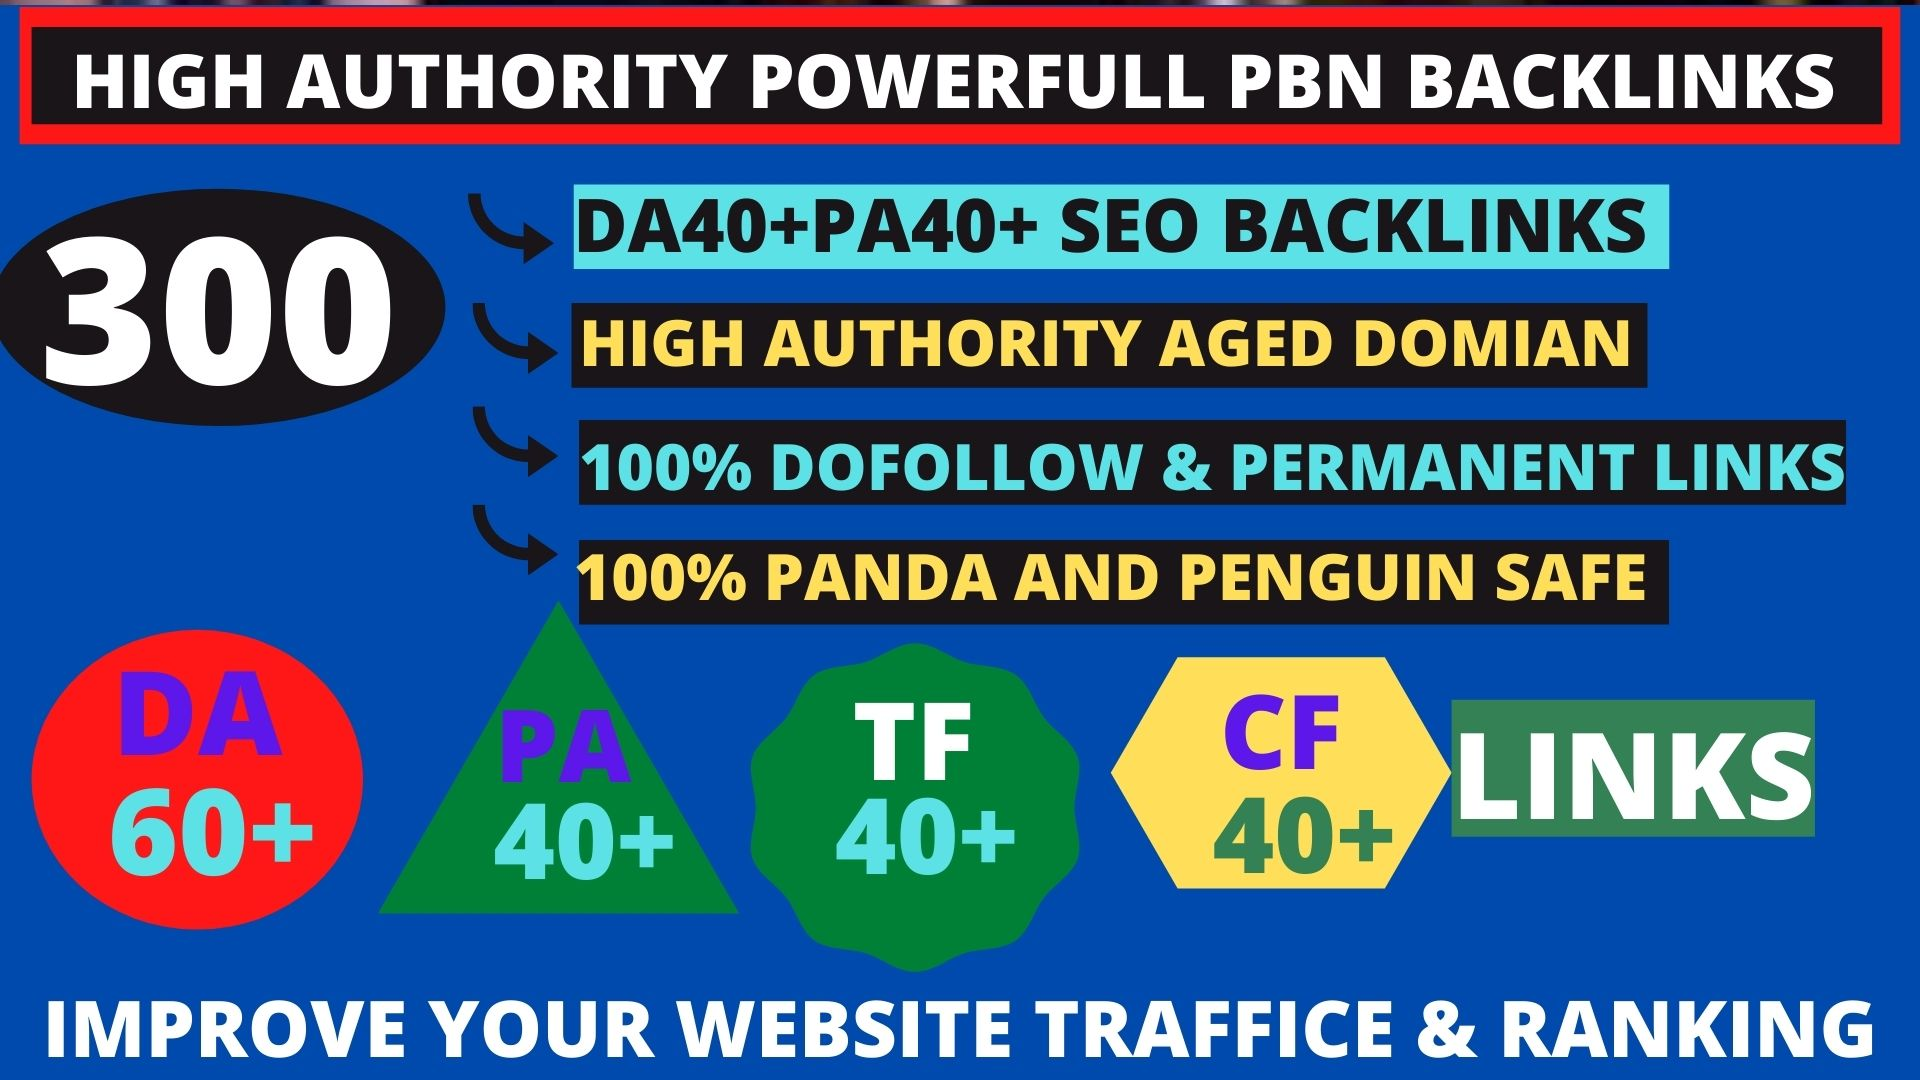 Get powerfull 300+ pbn backlink with high DA/PA/TF/CF on your homepage with unique website